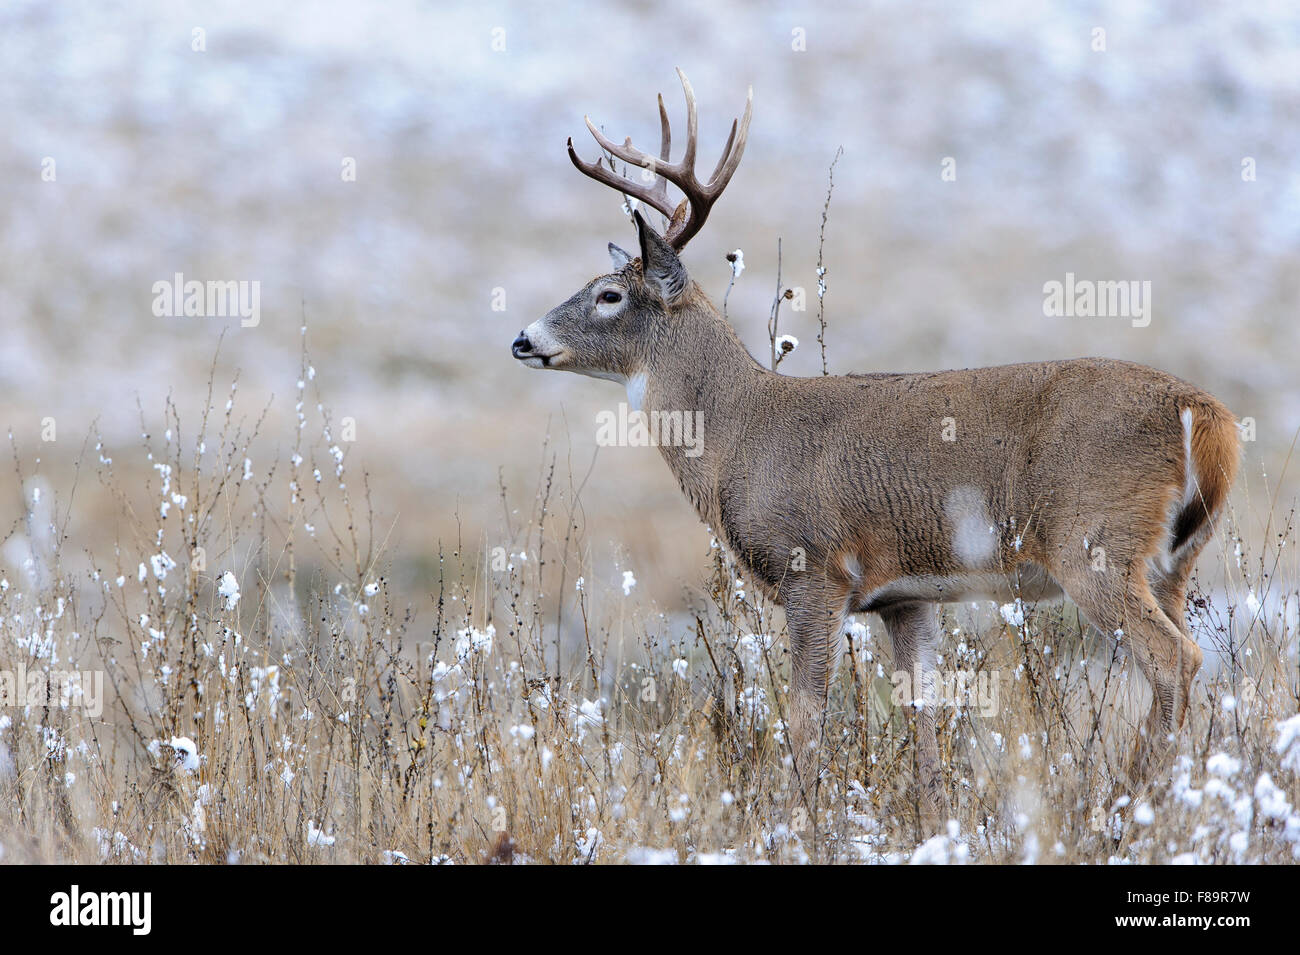 White-tailed Deer Buck During Autumn Rut, Western US - Stock Image